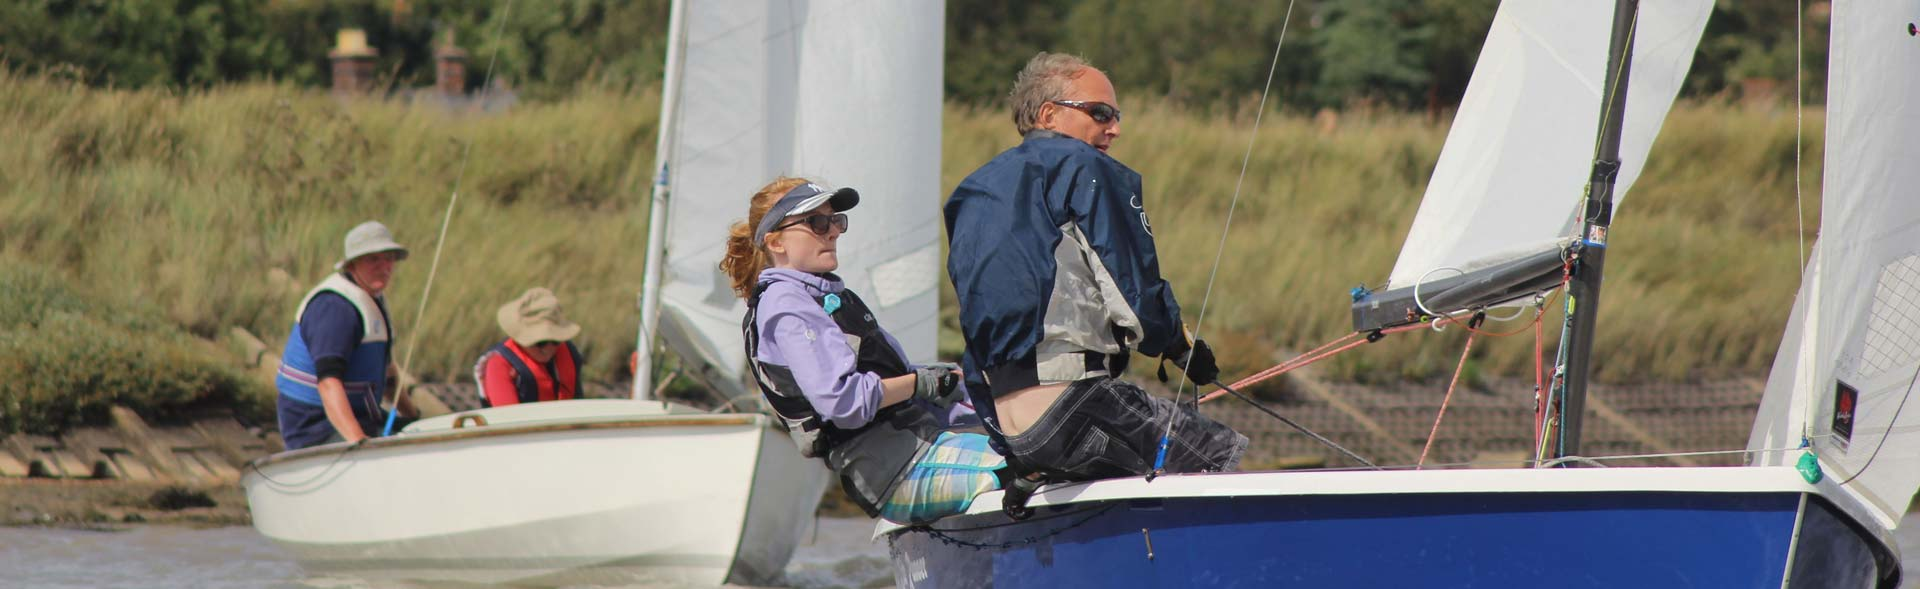 Adult Training Courses - Orford Sailing Club